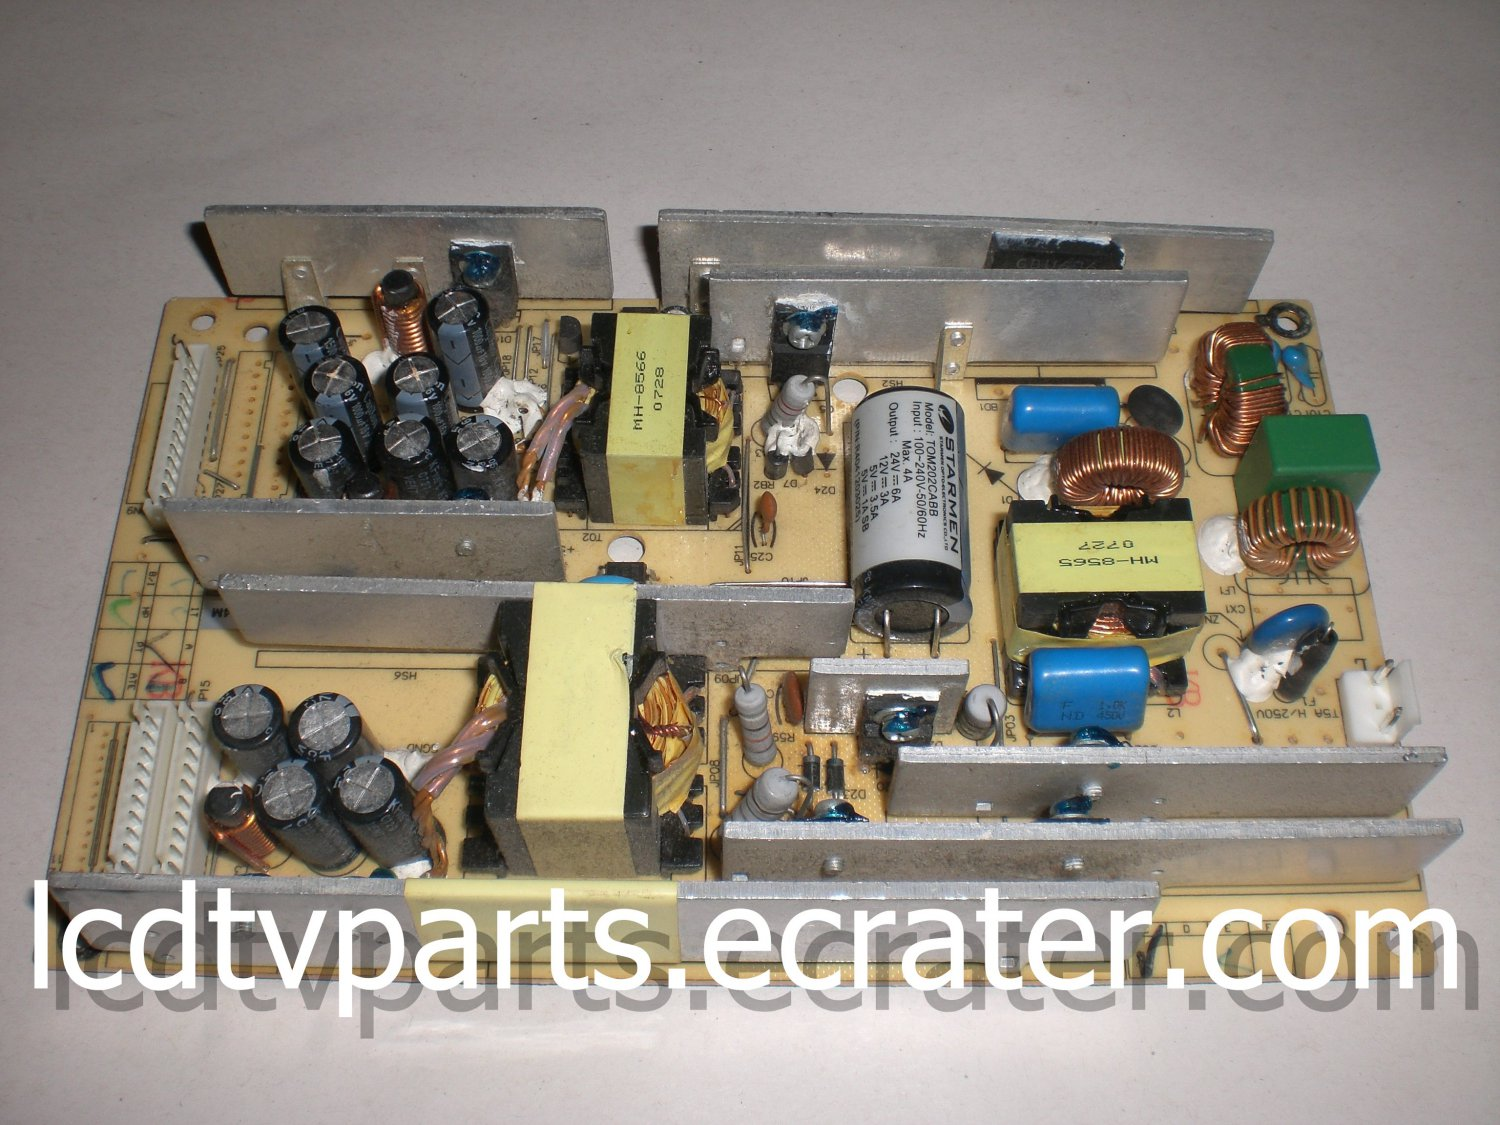 TOM202CABB, R4041203025, Power Supply for Digital Lifestyles LT26407, WT322